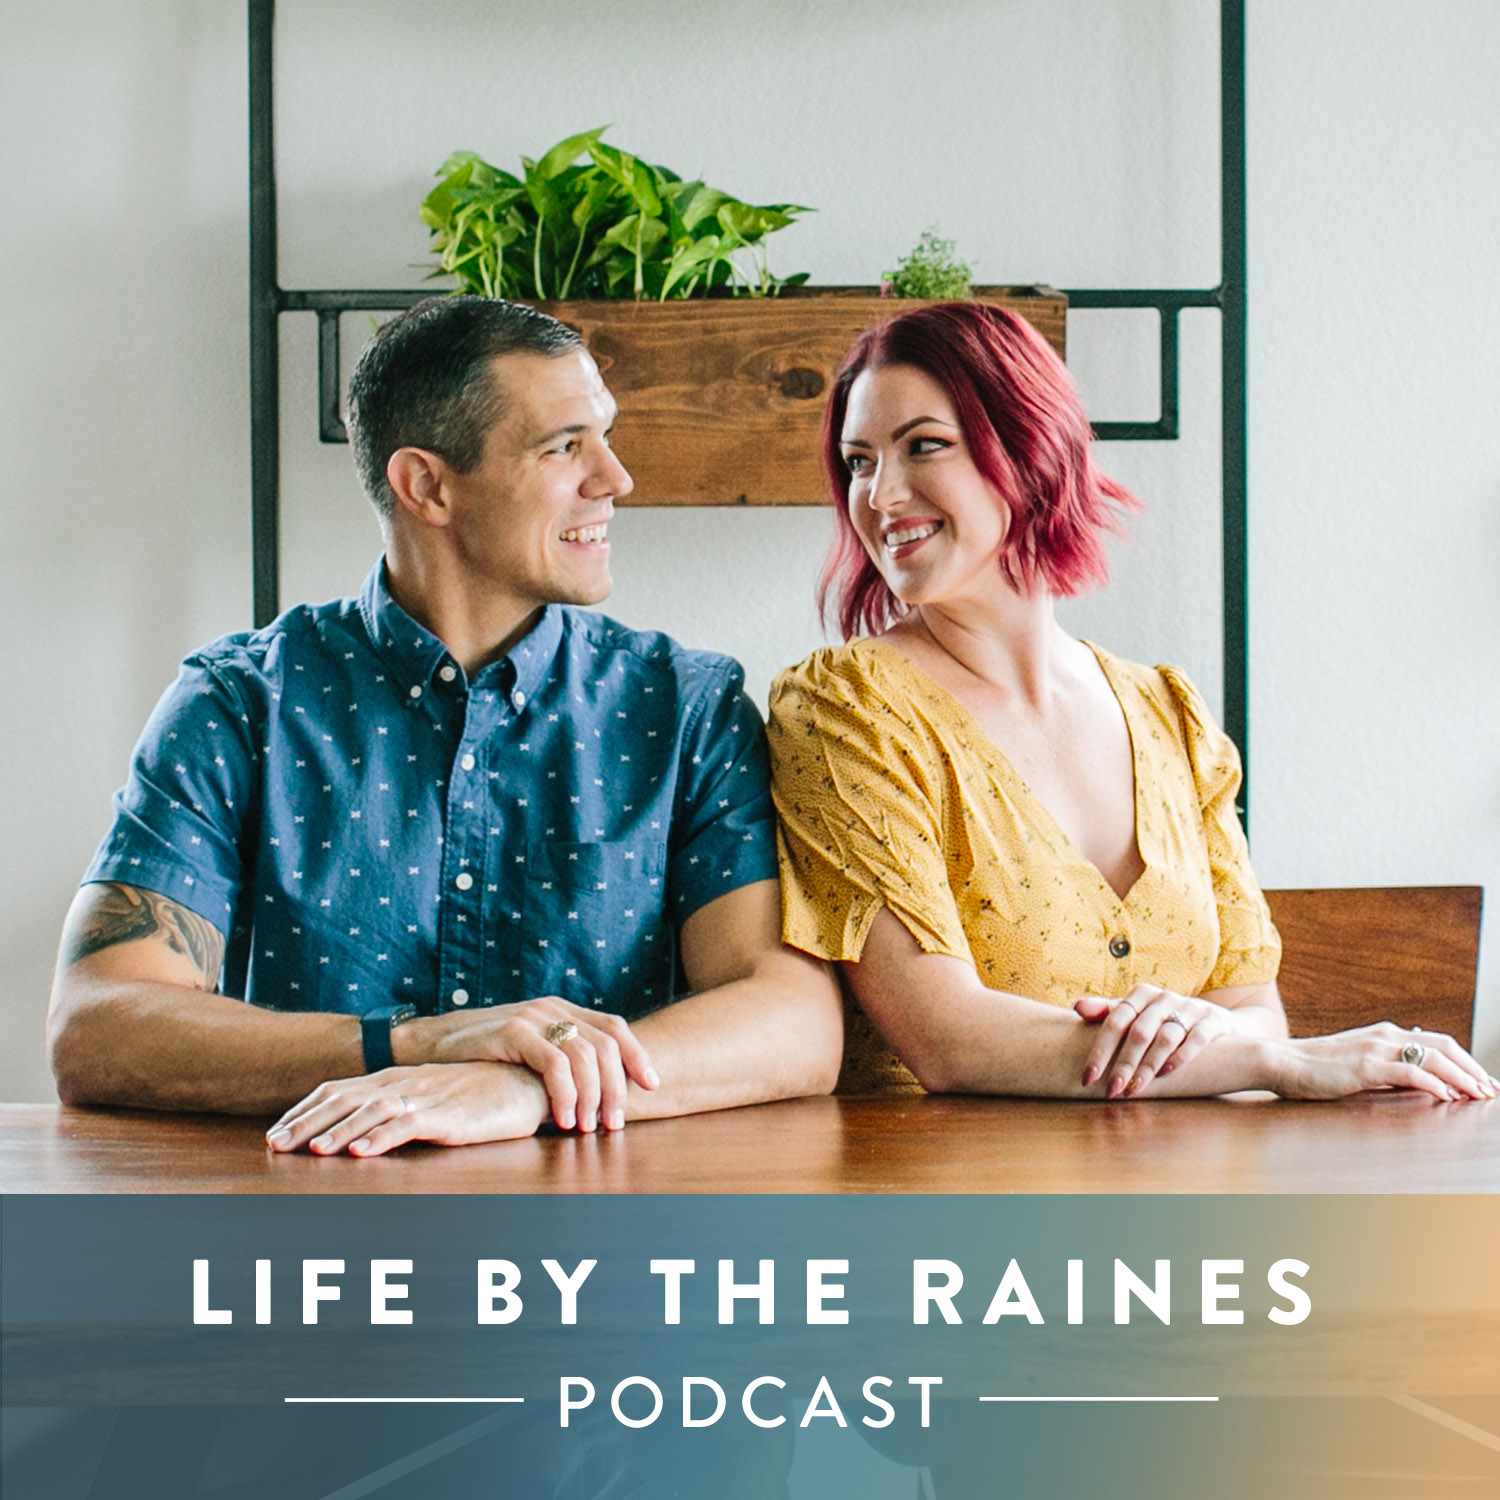 Life by the Raines Podcast show art